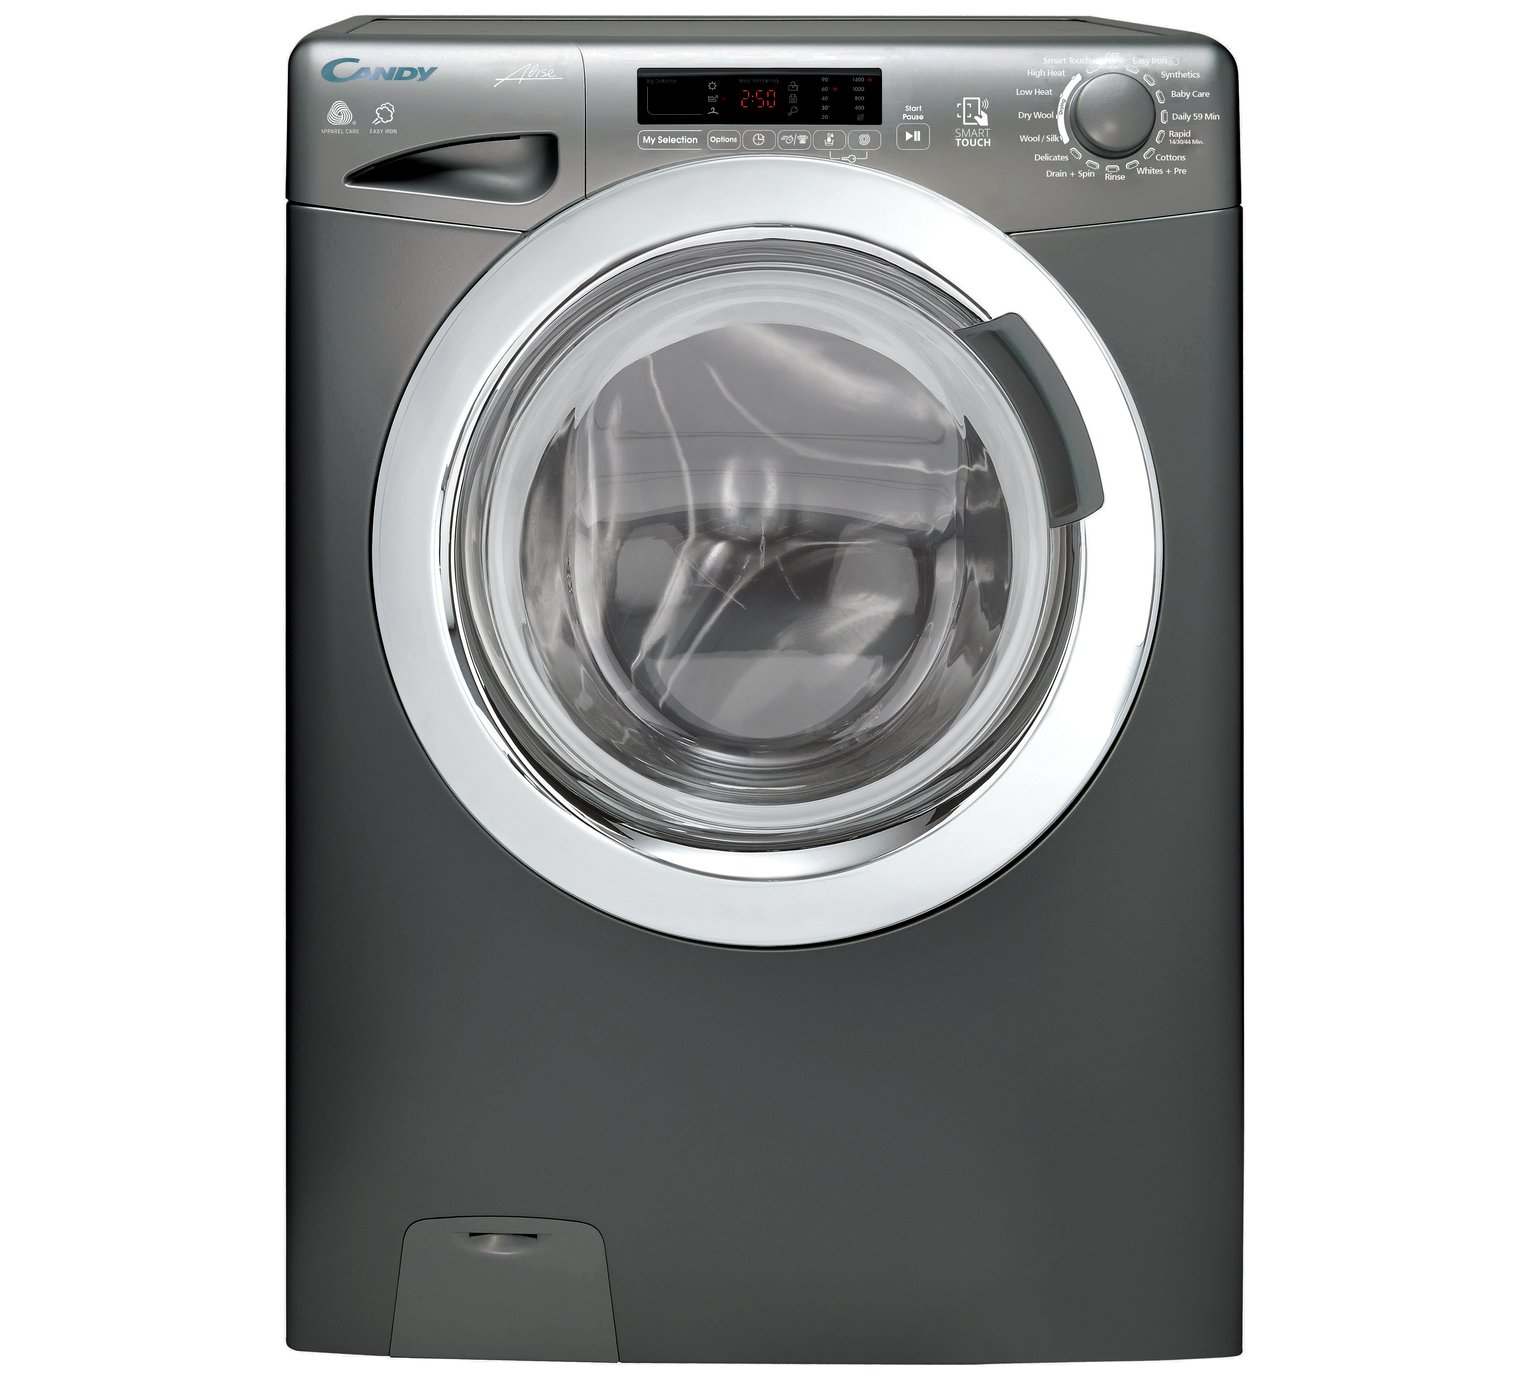 Candy GVSW485DCR 8 / 5KG 1400 Spin Washer Dryer - Graphite